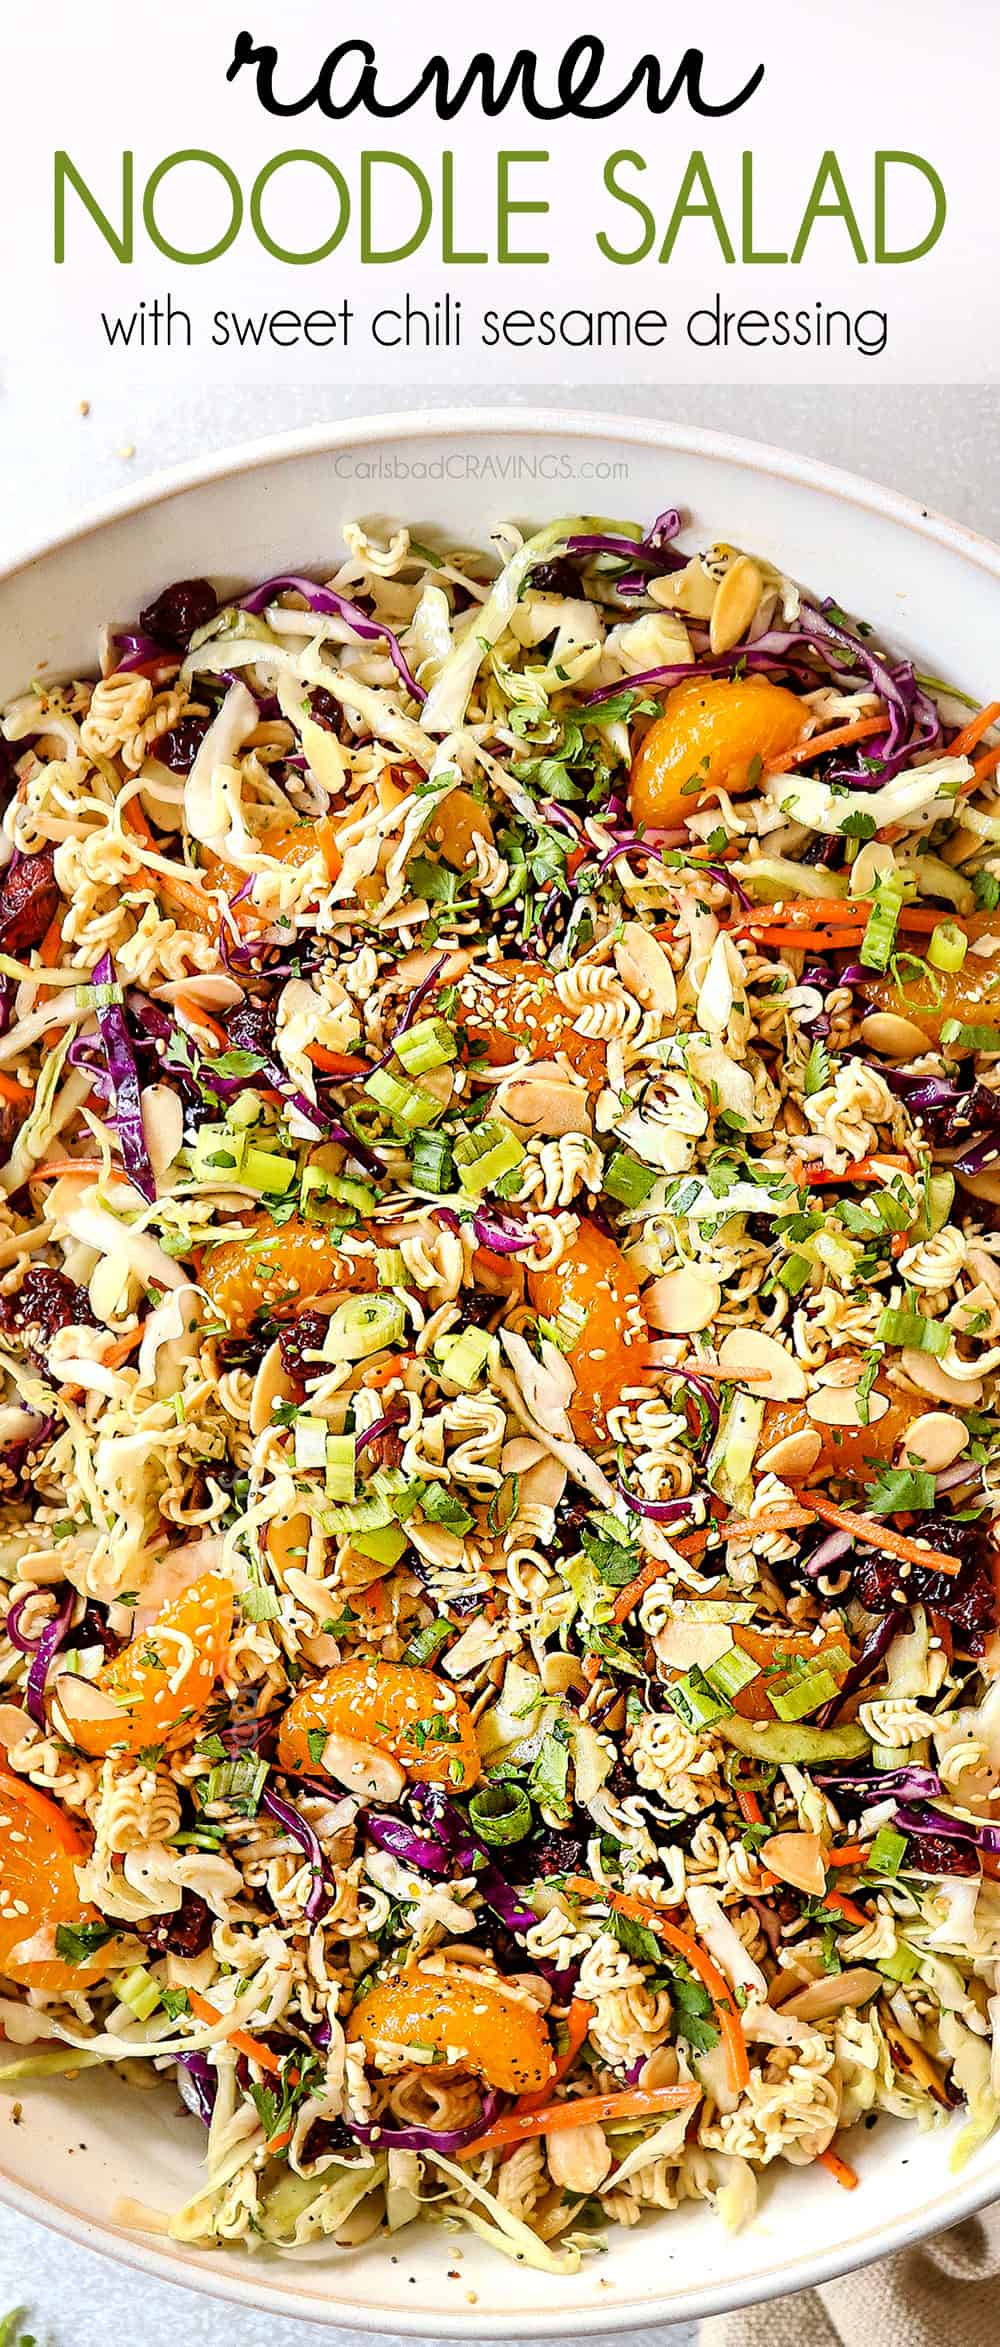 top view showing how to make Asian Ramen Noodle Salad by tossing the ingredients together with the dressing in a white bowl